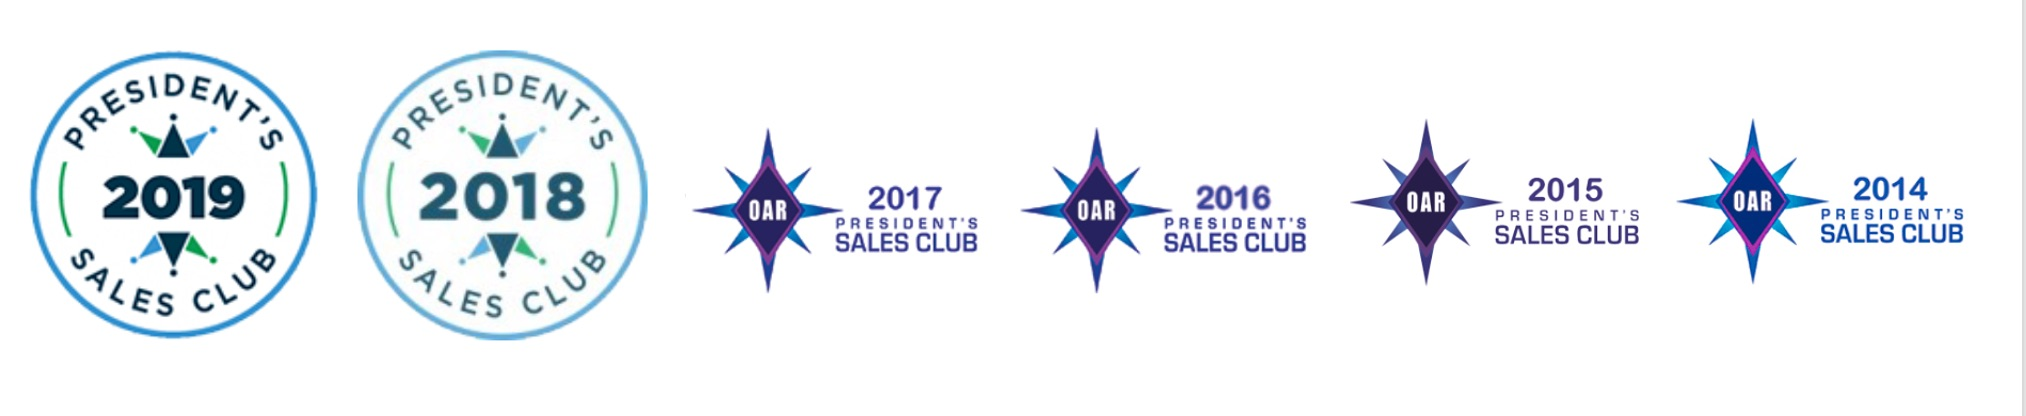 Presidents Sales Club